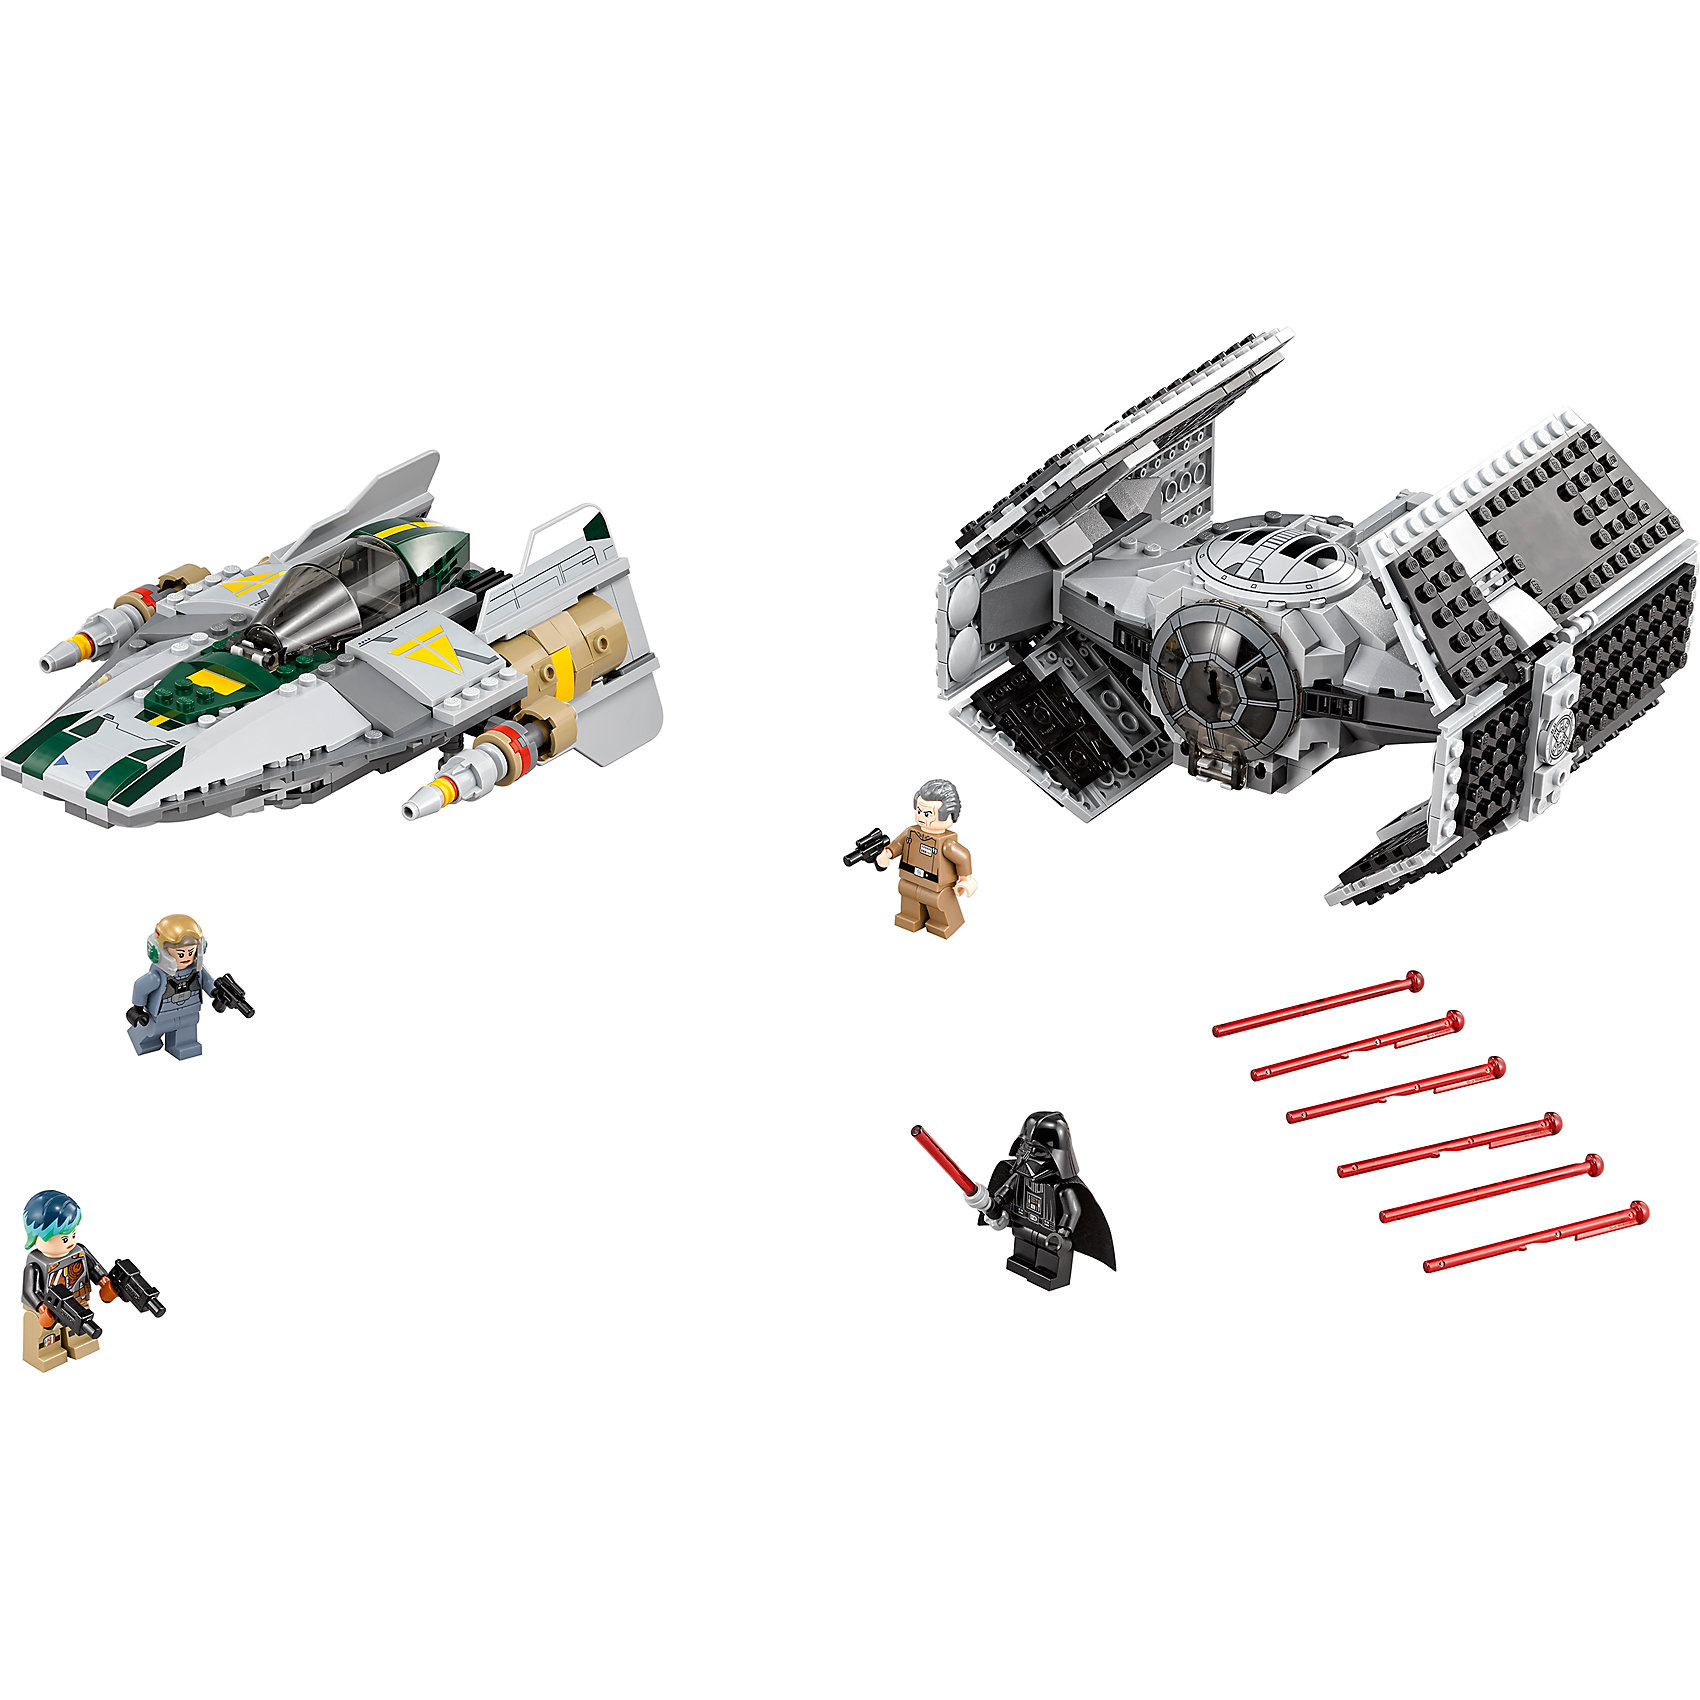 LEGO Star Wars 75150: ������������������� ����������� ��� ����� ������� ������ �������� ����������� A-Wing